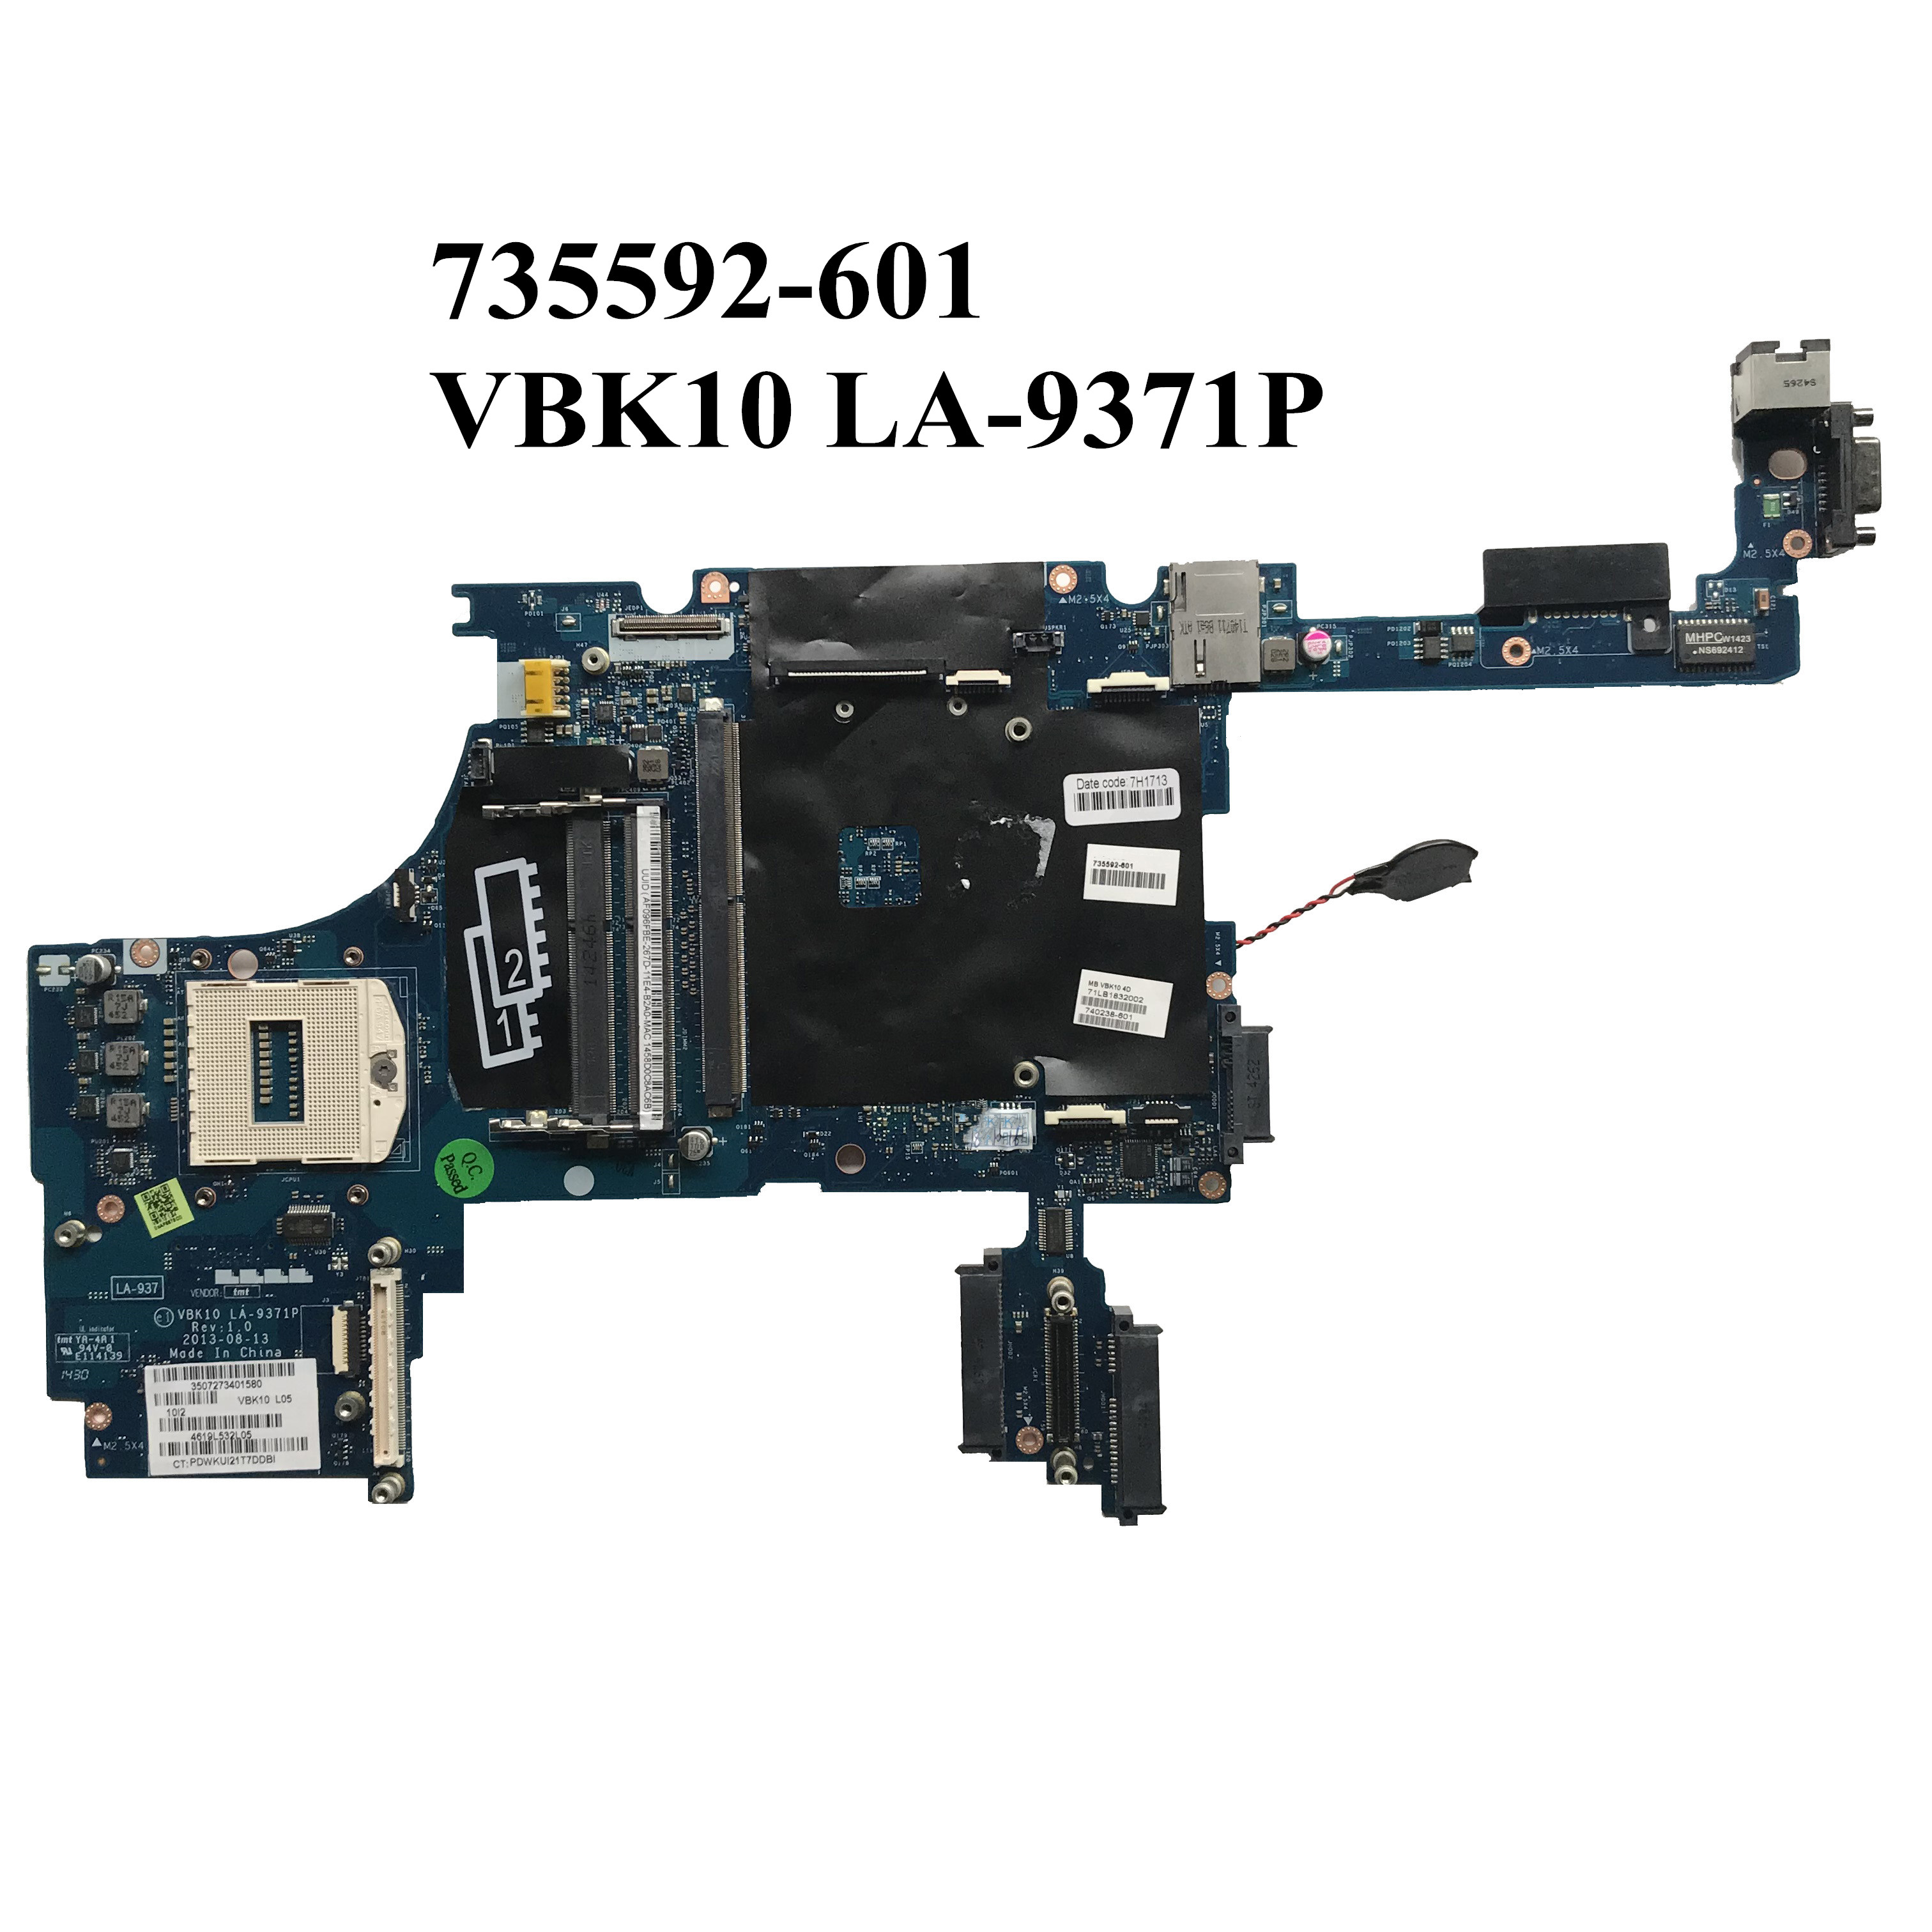 China Hp Zbook, China Hp Zbook Manufacturers and Suppliers